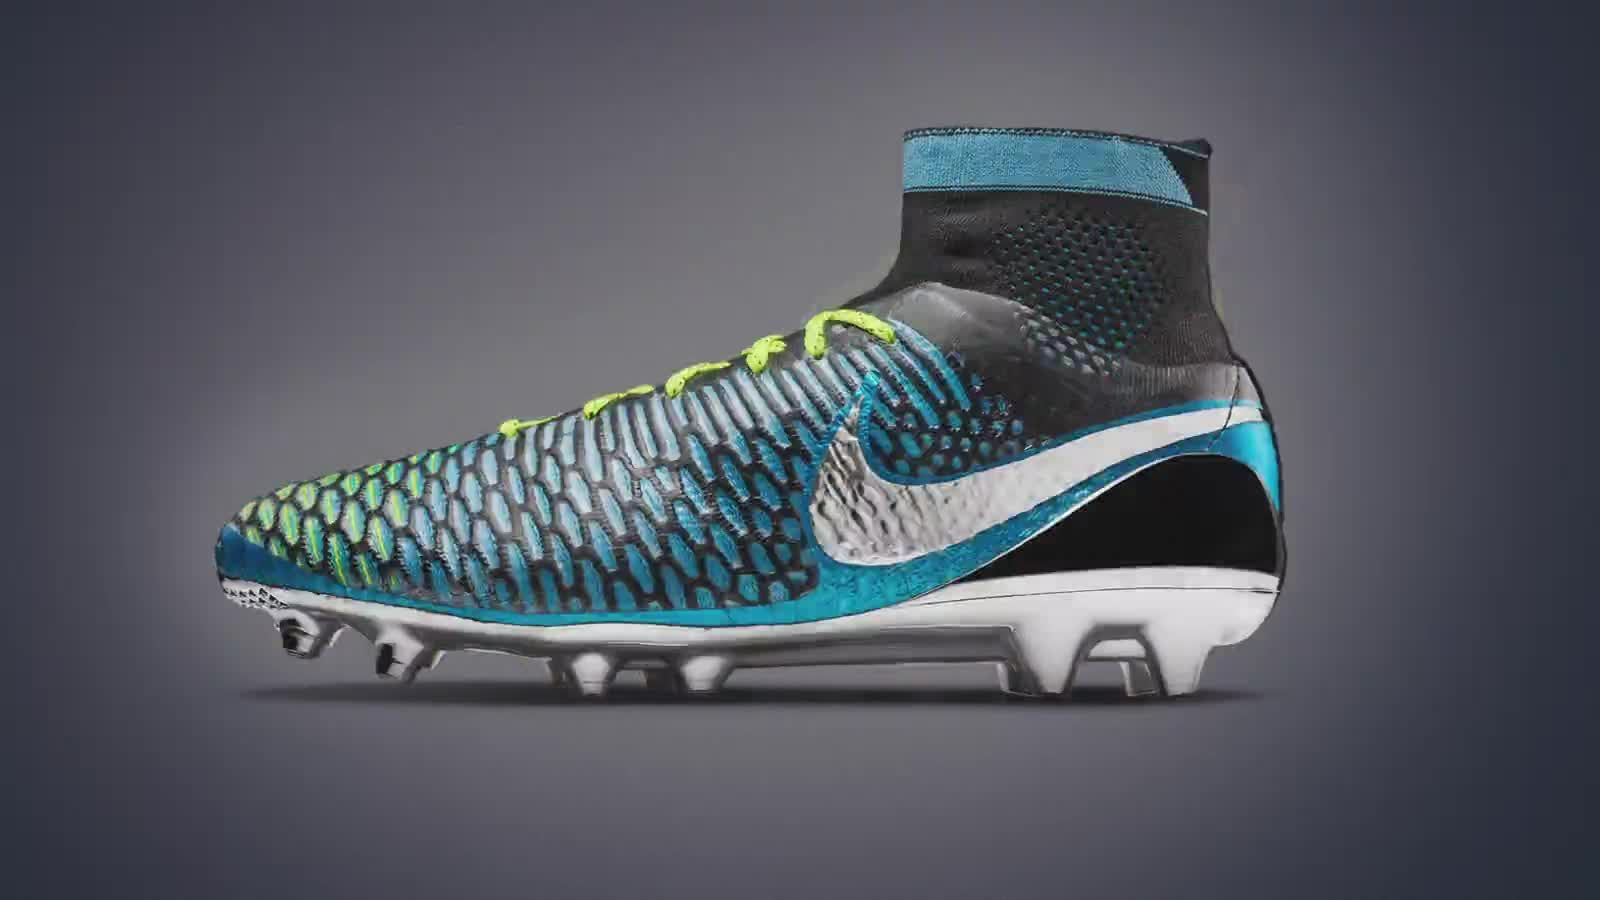 New Nike Magista Magista Obra Boot Prototypes. The new Nike Magista  Football Boot prototypes are showing eight spectacular designs, while one  boot features ...